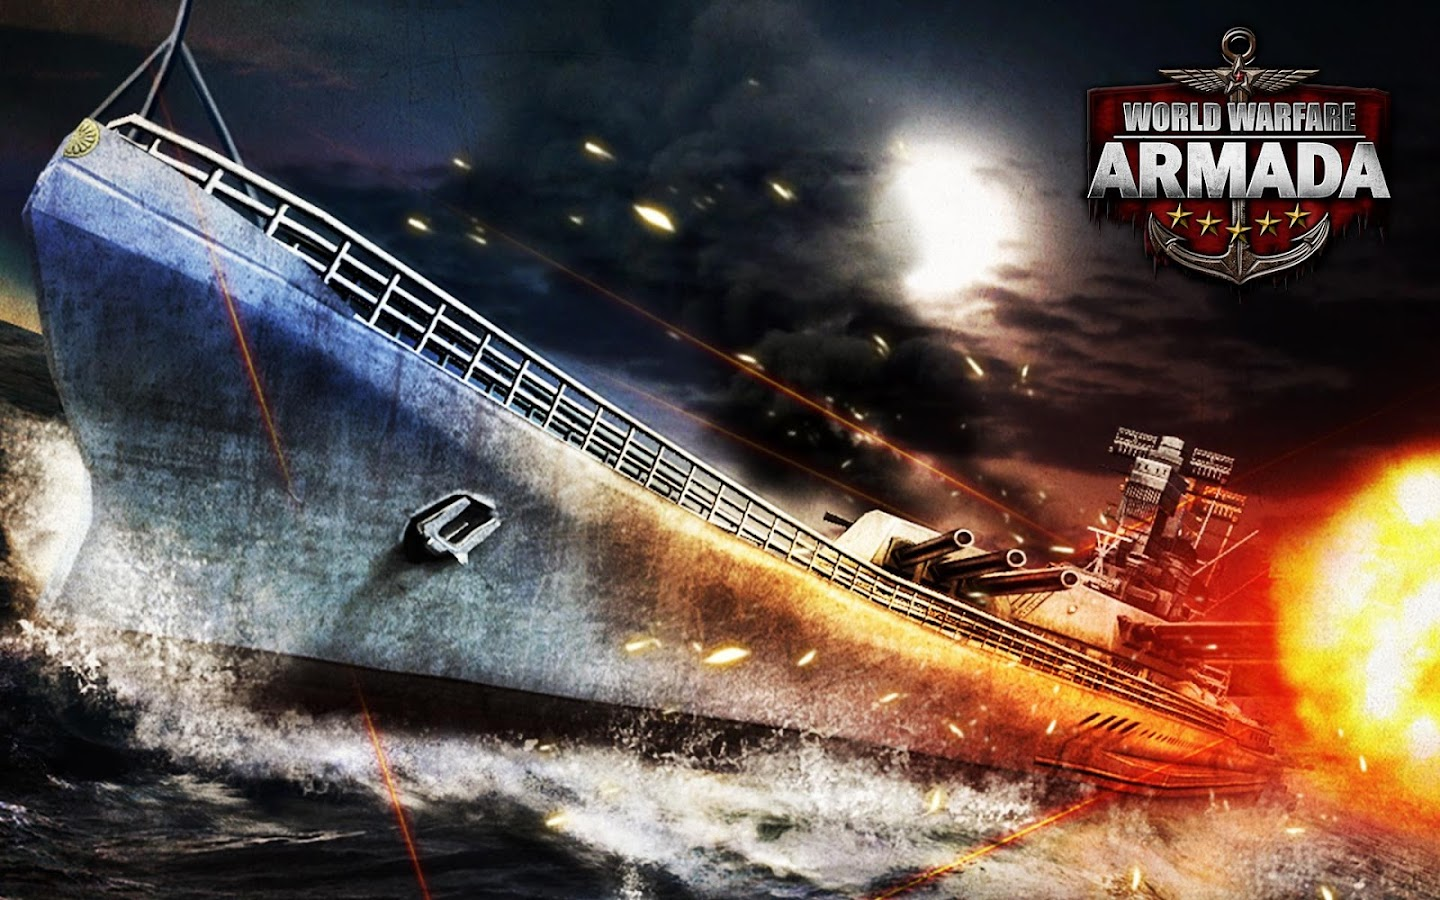 World Warfare: Armada Screenshot 7